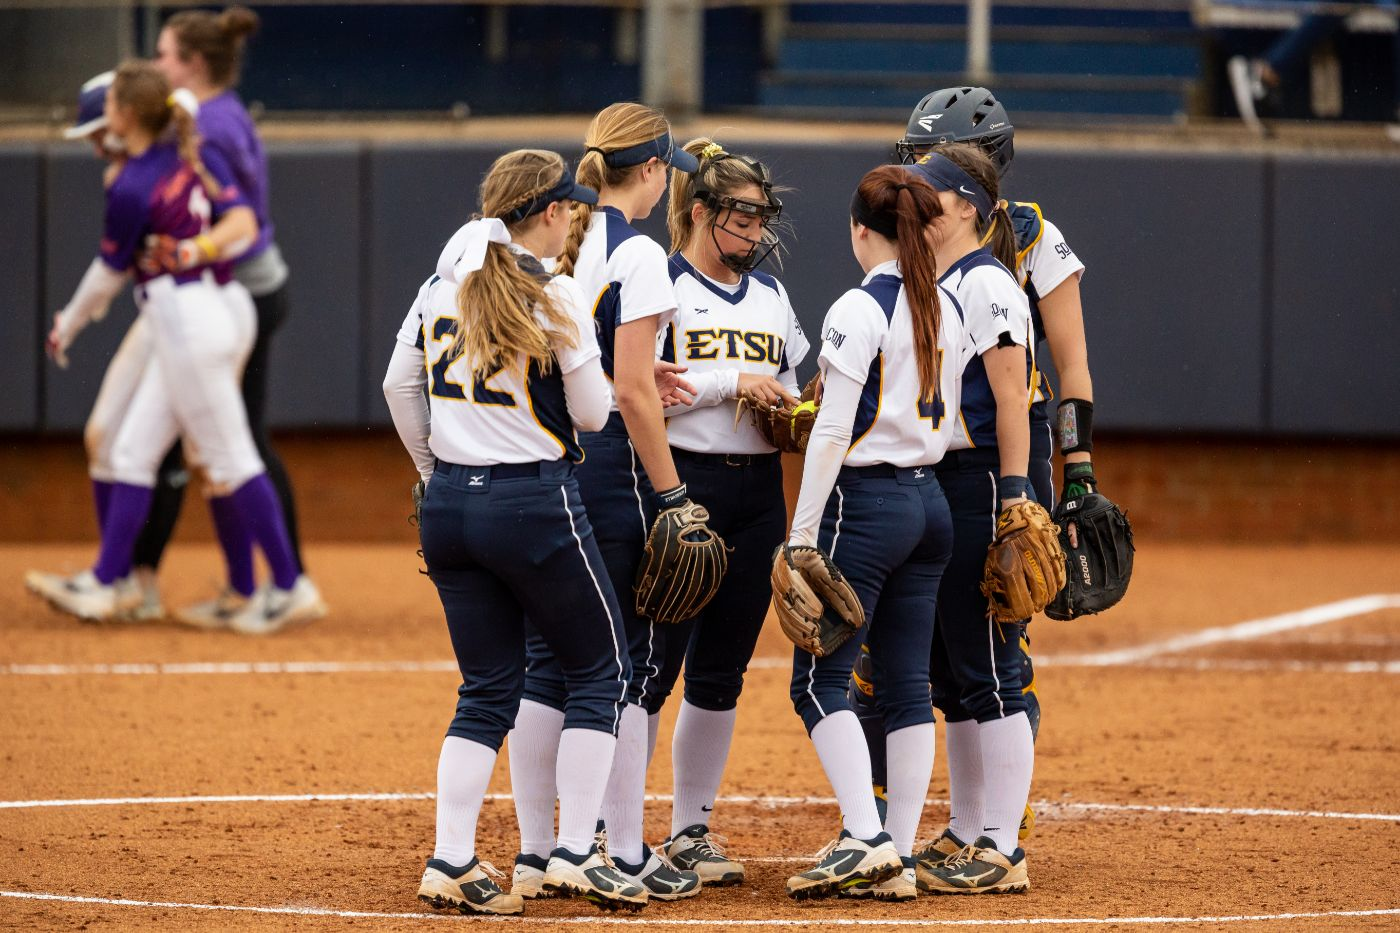 Bucs Ready to Host Altered Buccaneer Classic